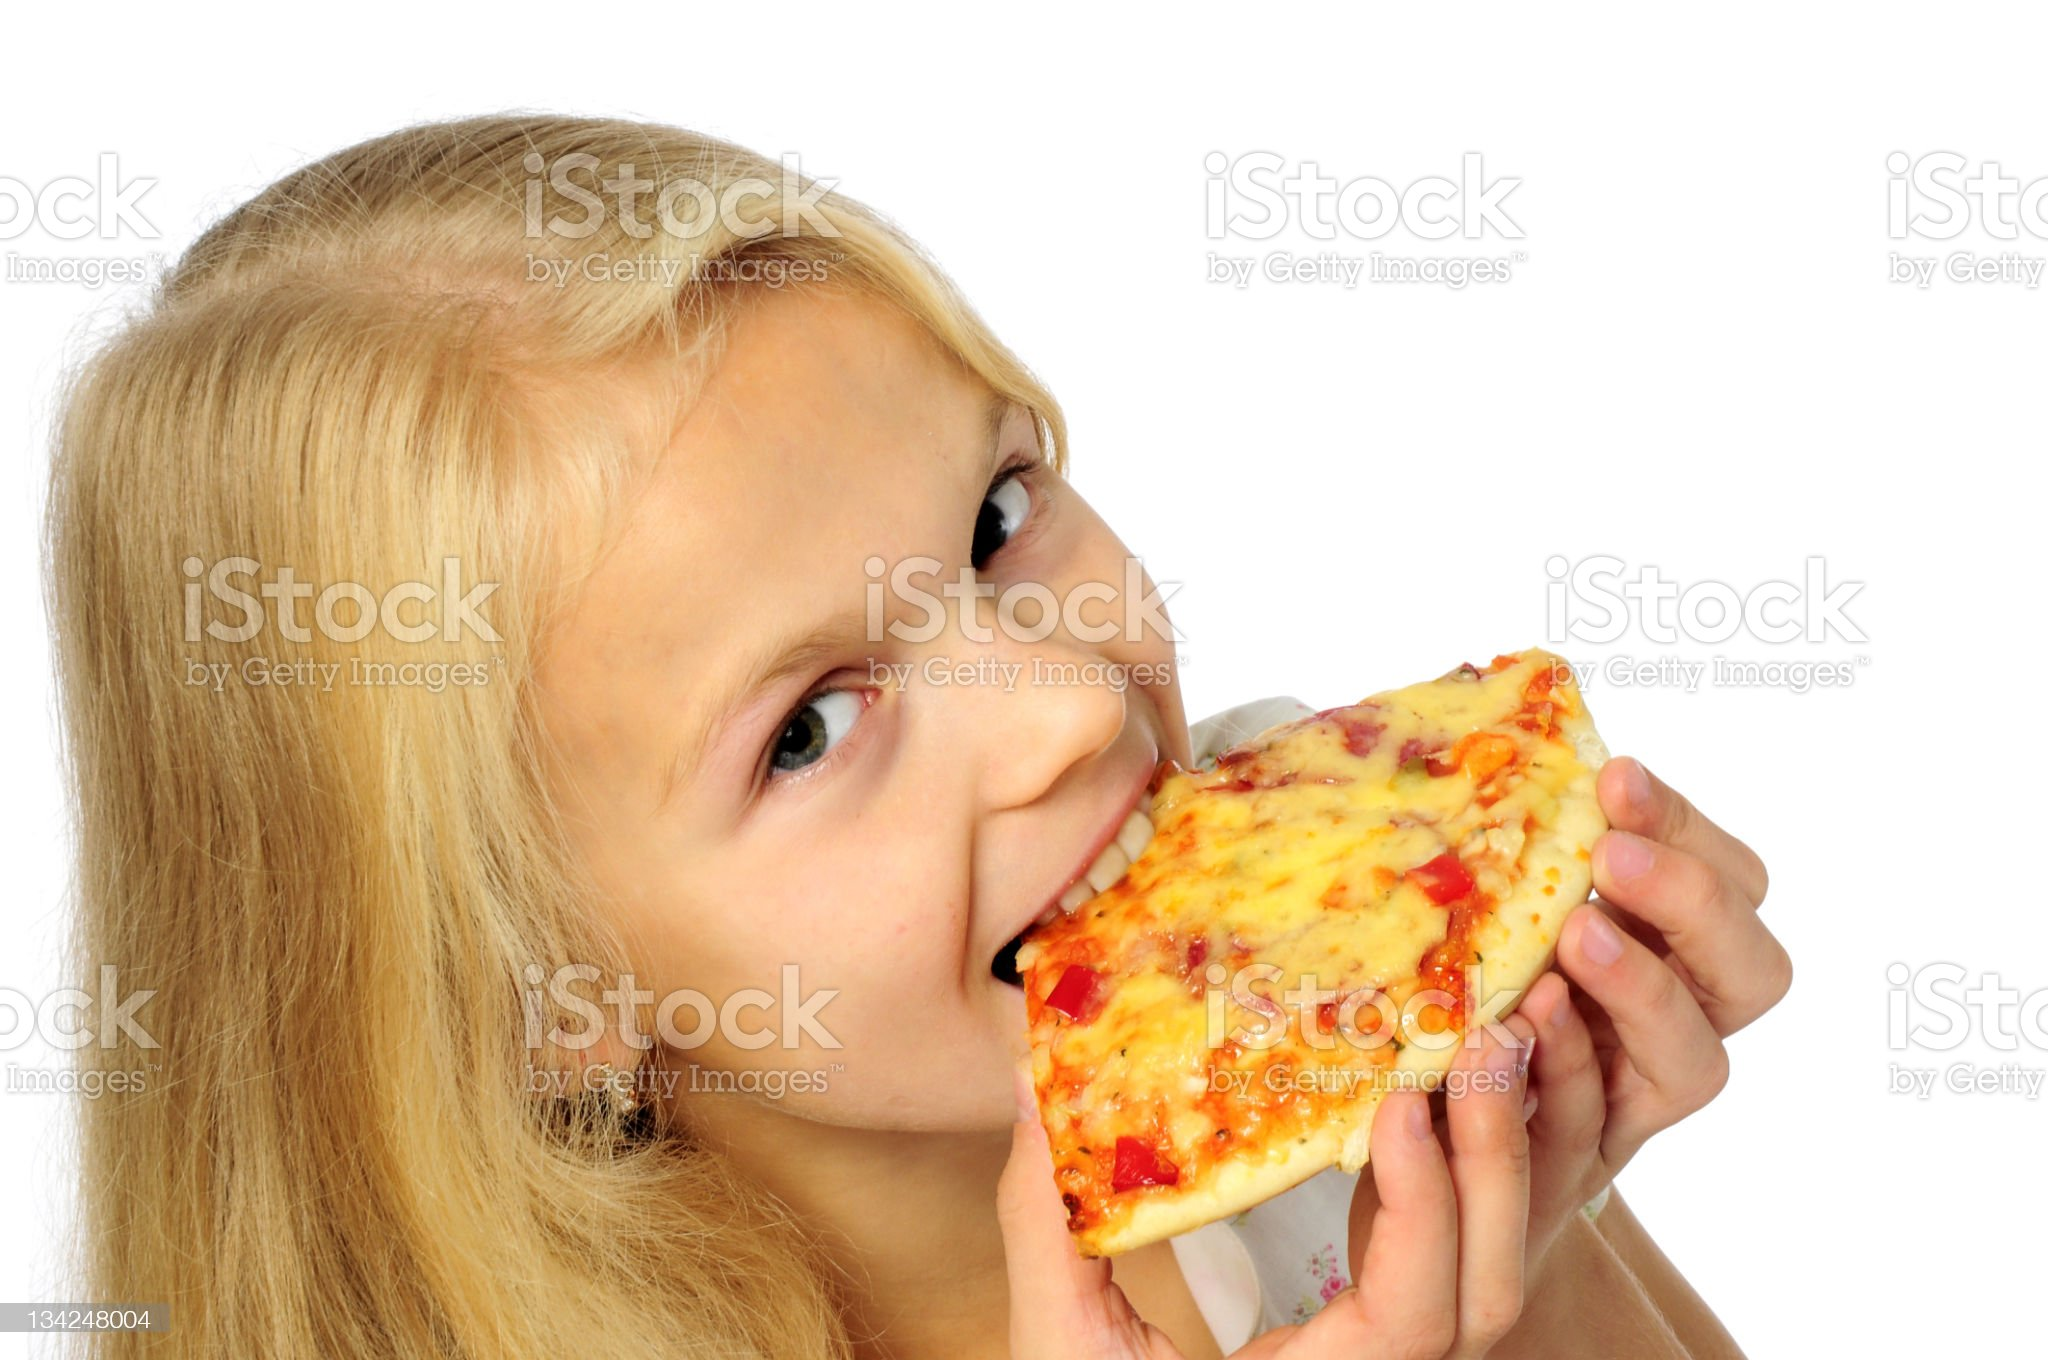 Small girl eating slice of pizza royalty-free stock photo